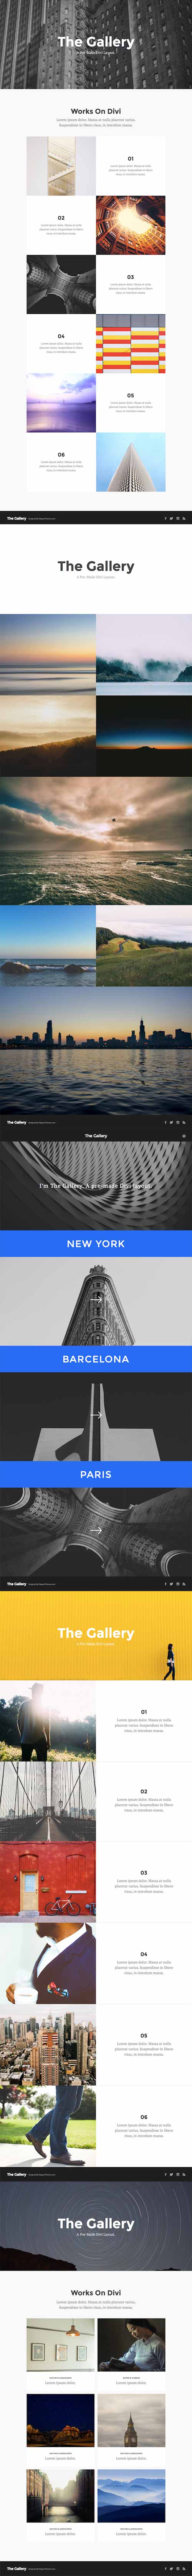 divi gallery layout pack